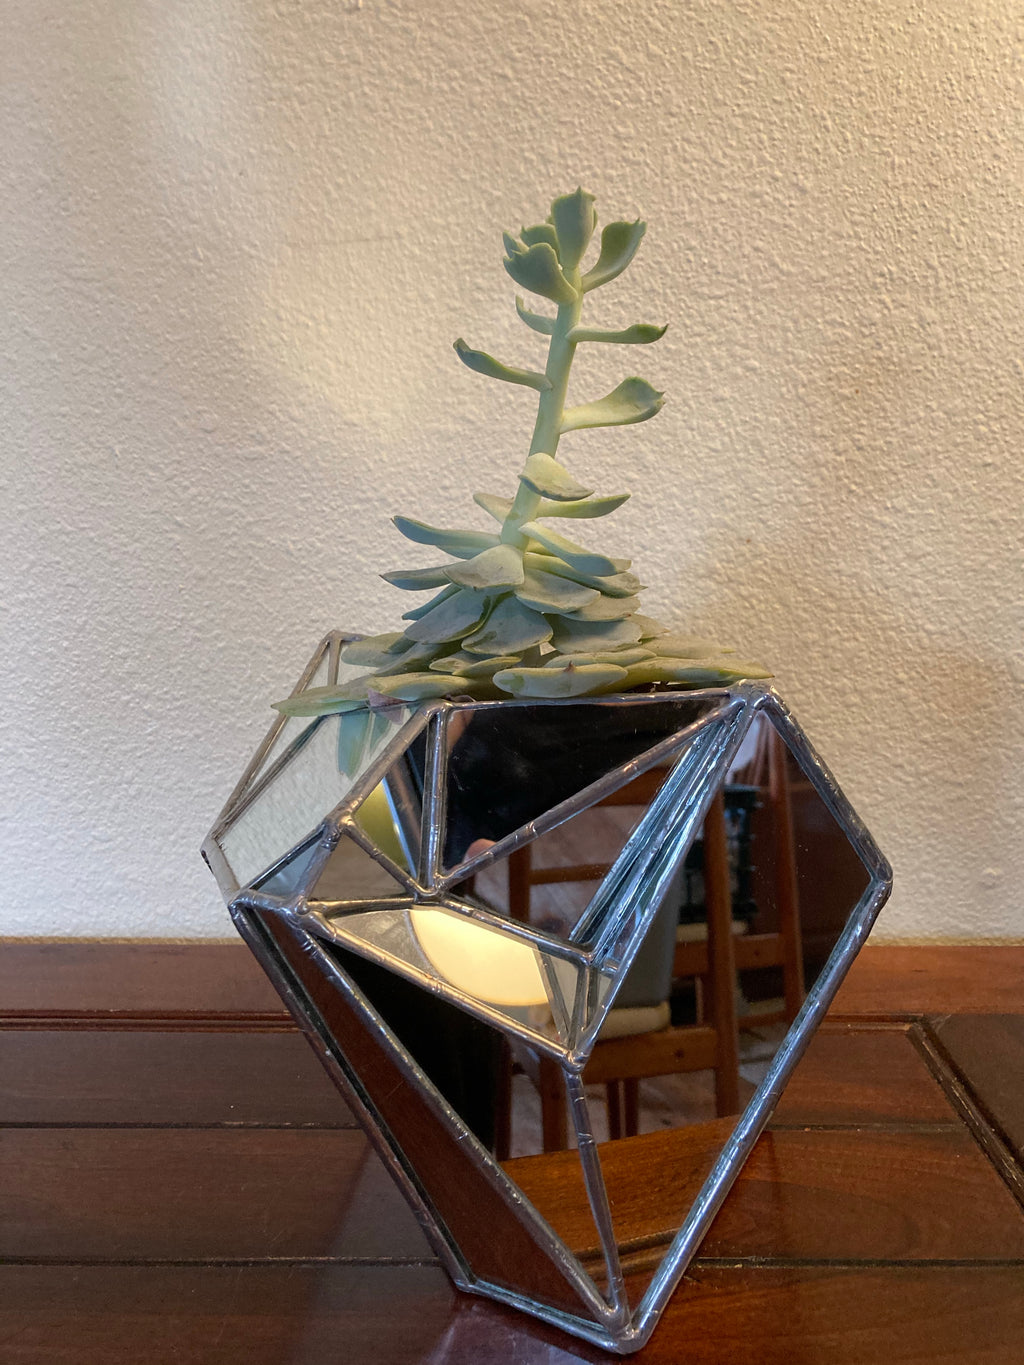 Sculptural Mirror Vase #4